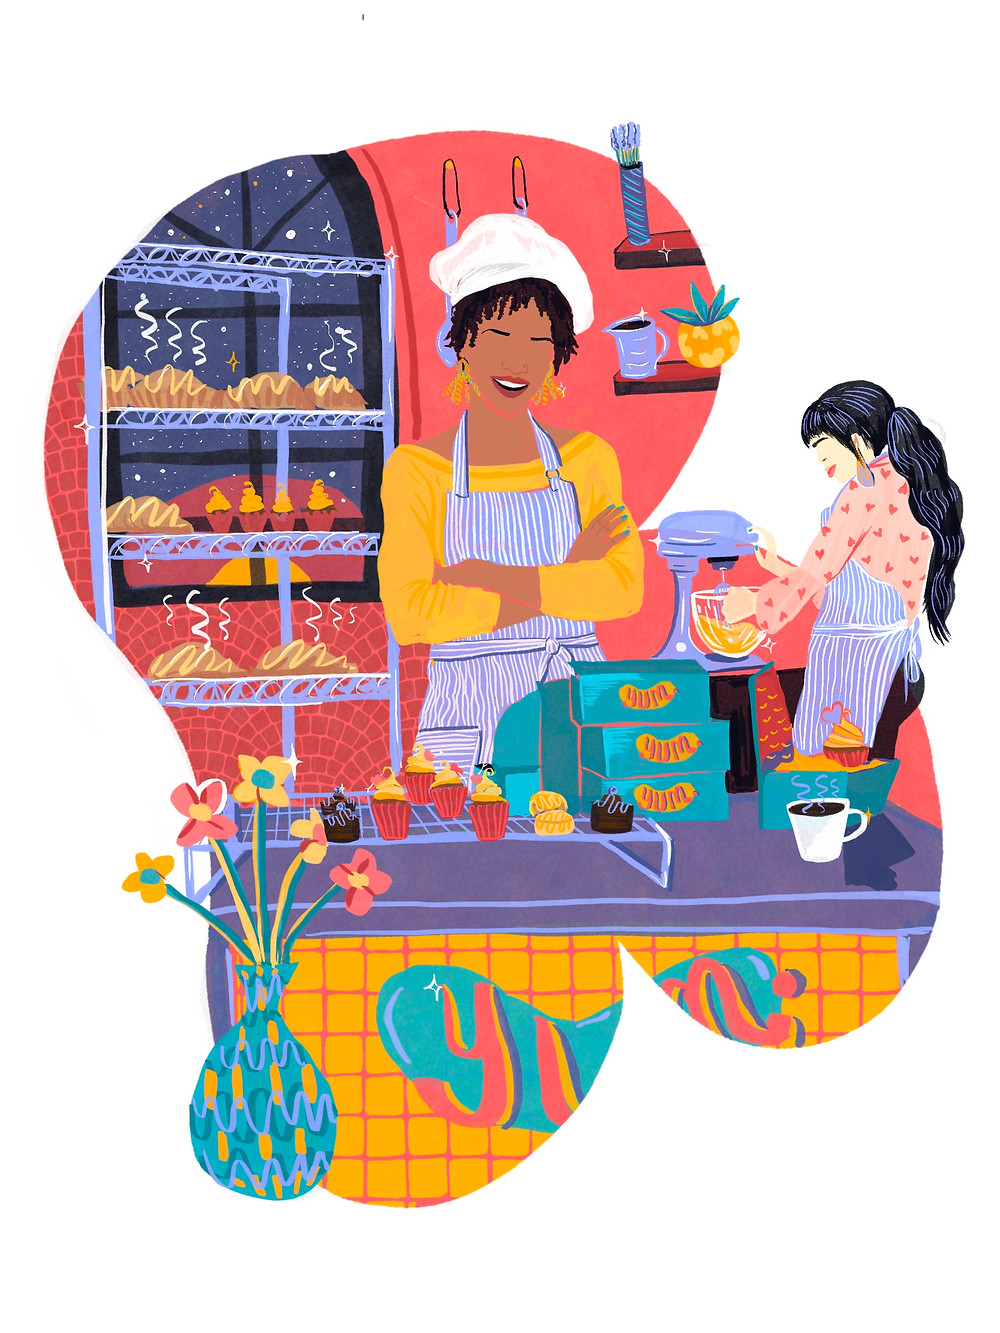 Woman of color shown as an owner of a bakery behind the counter where she stands by freshly baked cupcakes and bread. Standing behind her is another worker holding a mixing bowl.